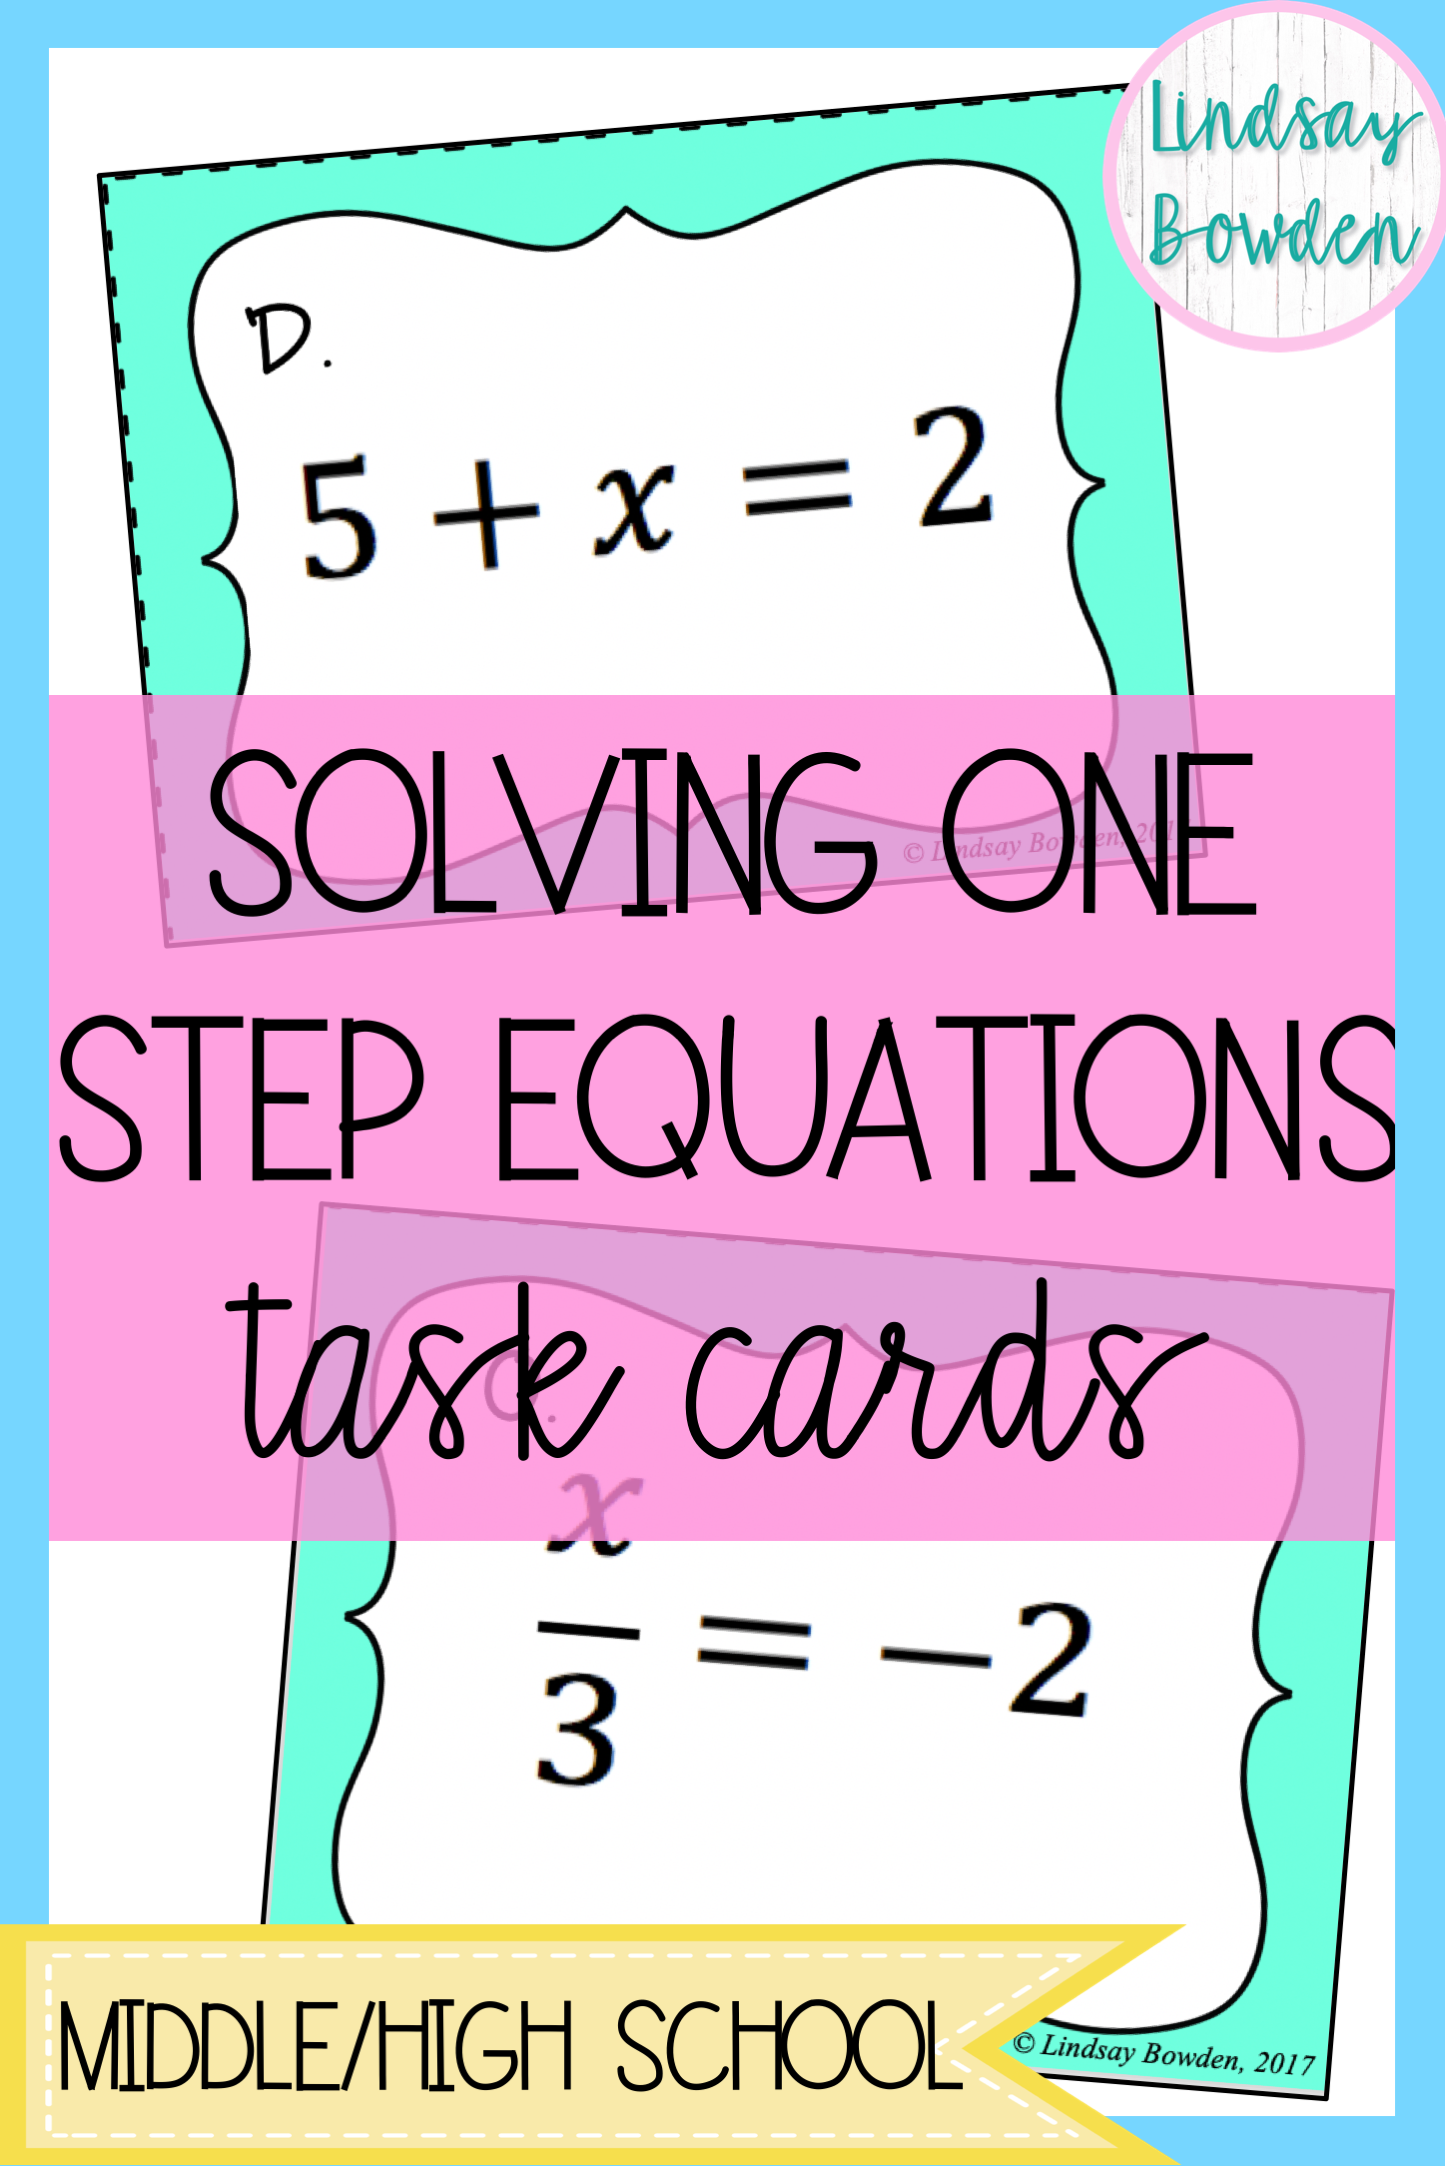 One Step Equation Task Cards With Images